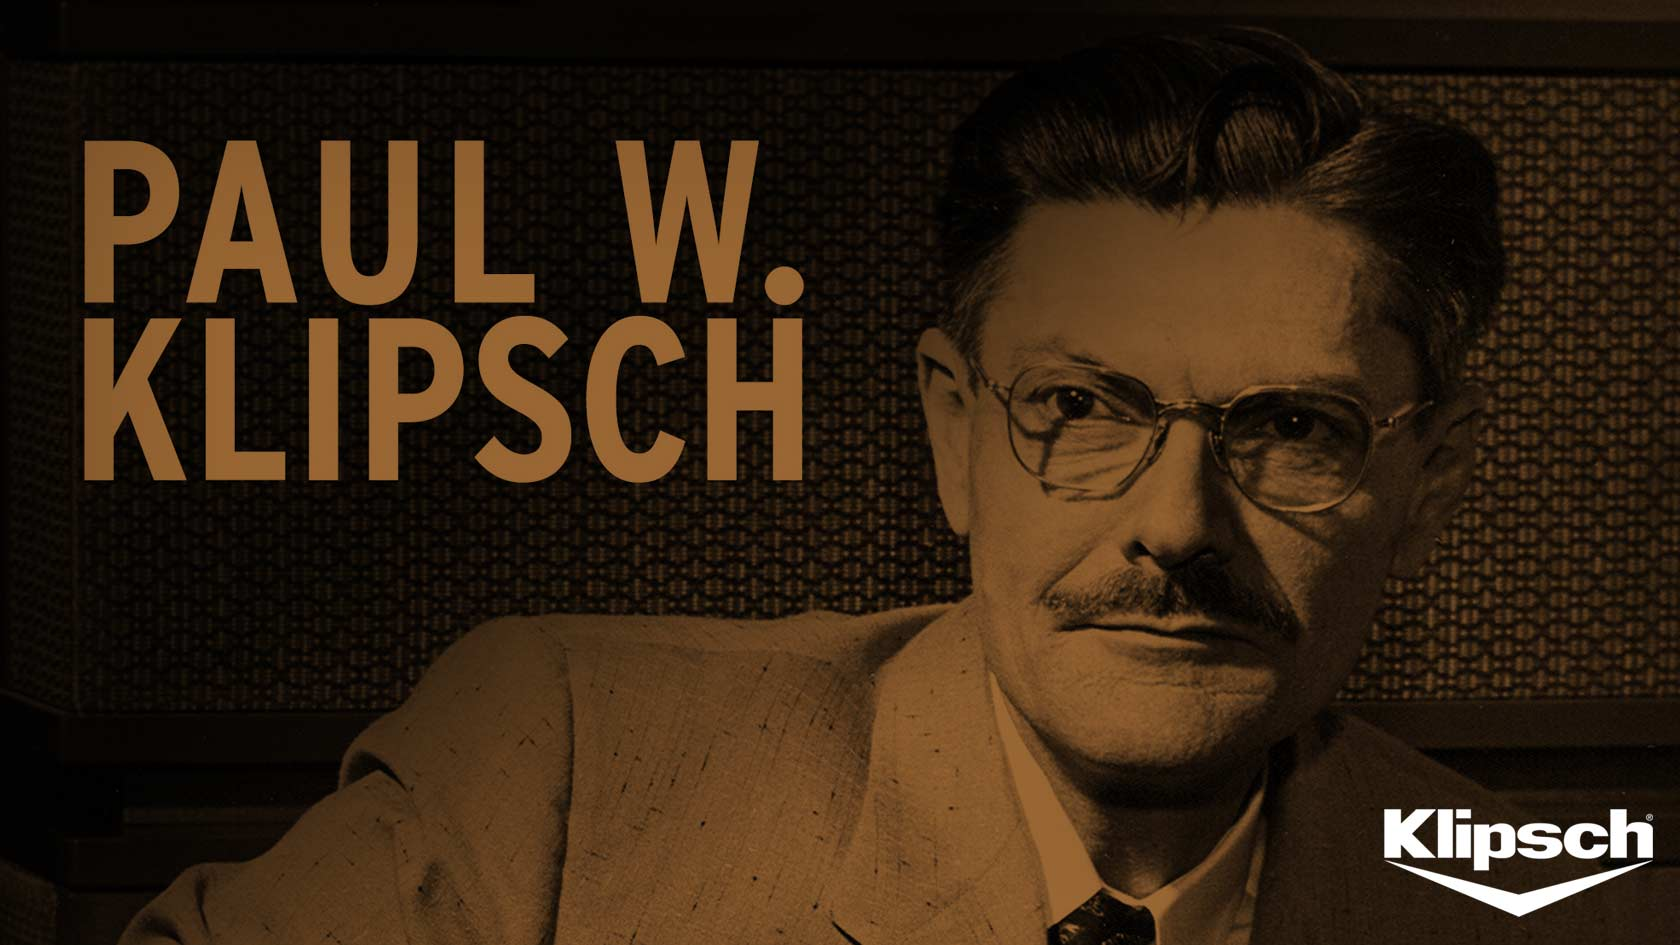 Paul W. Klipschs world of speaker